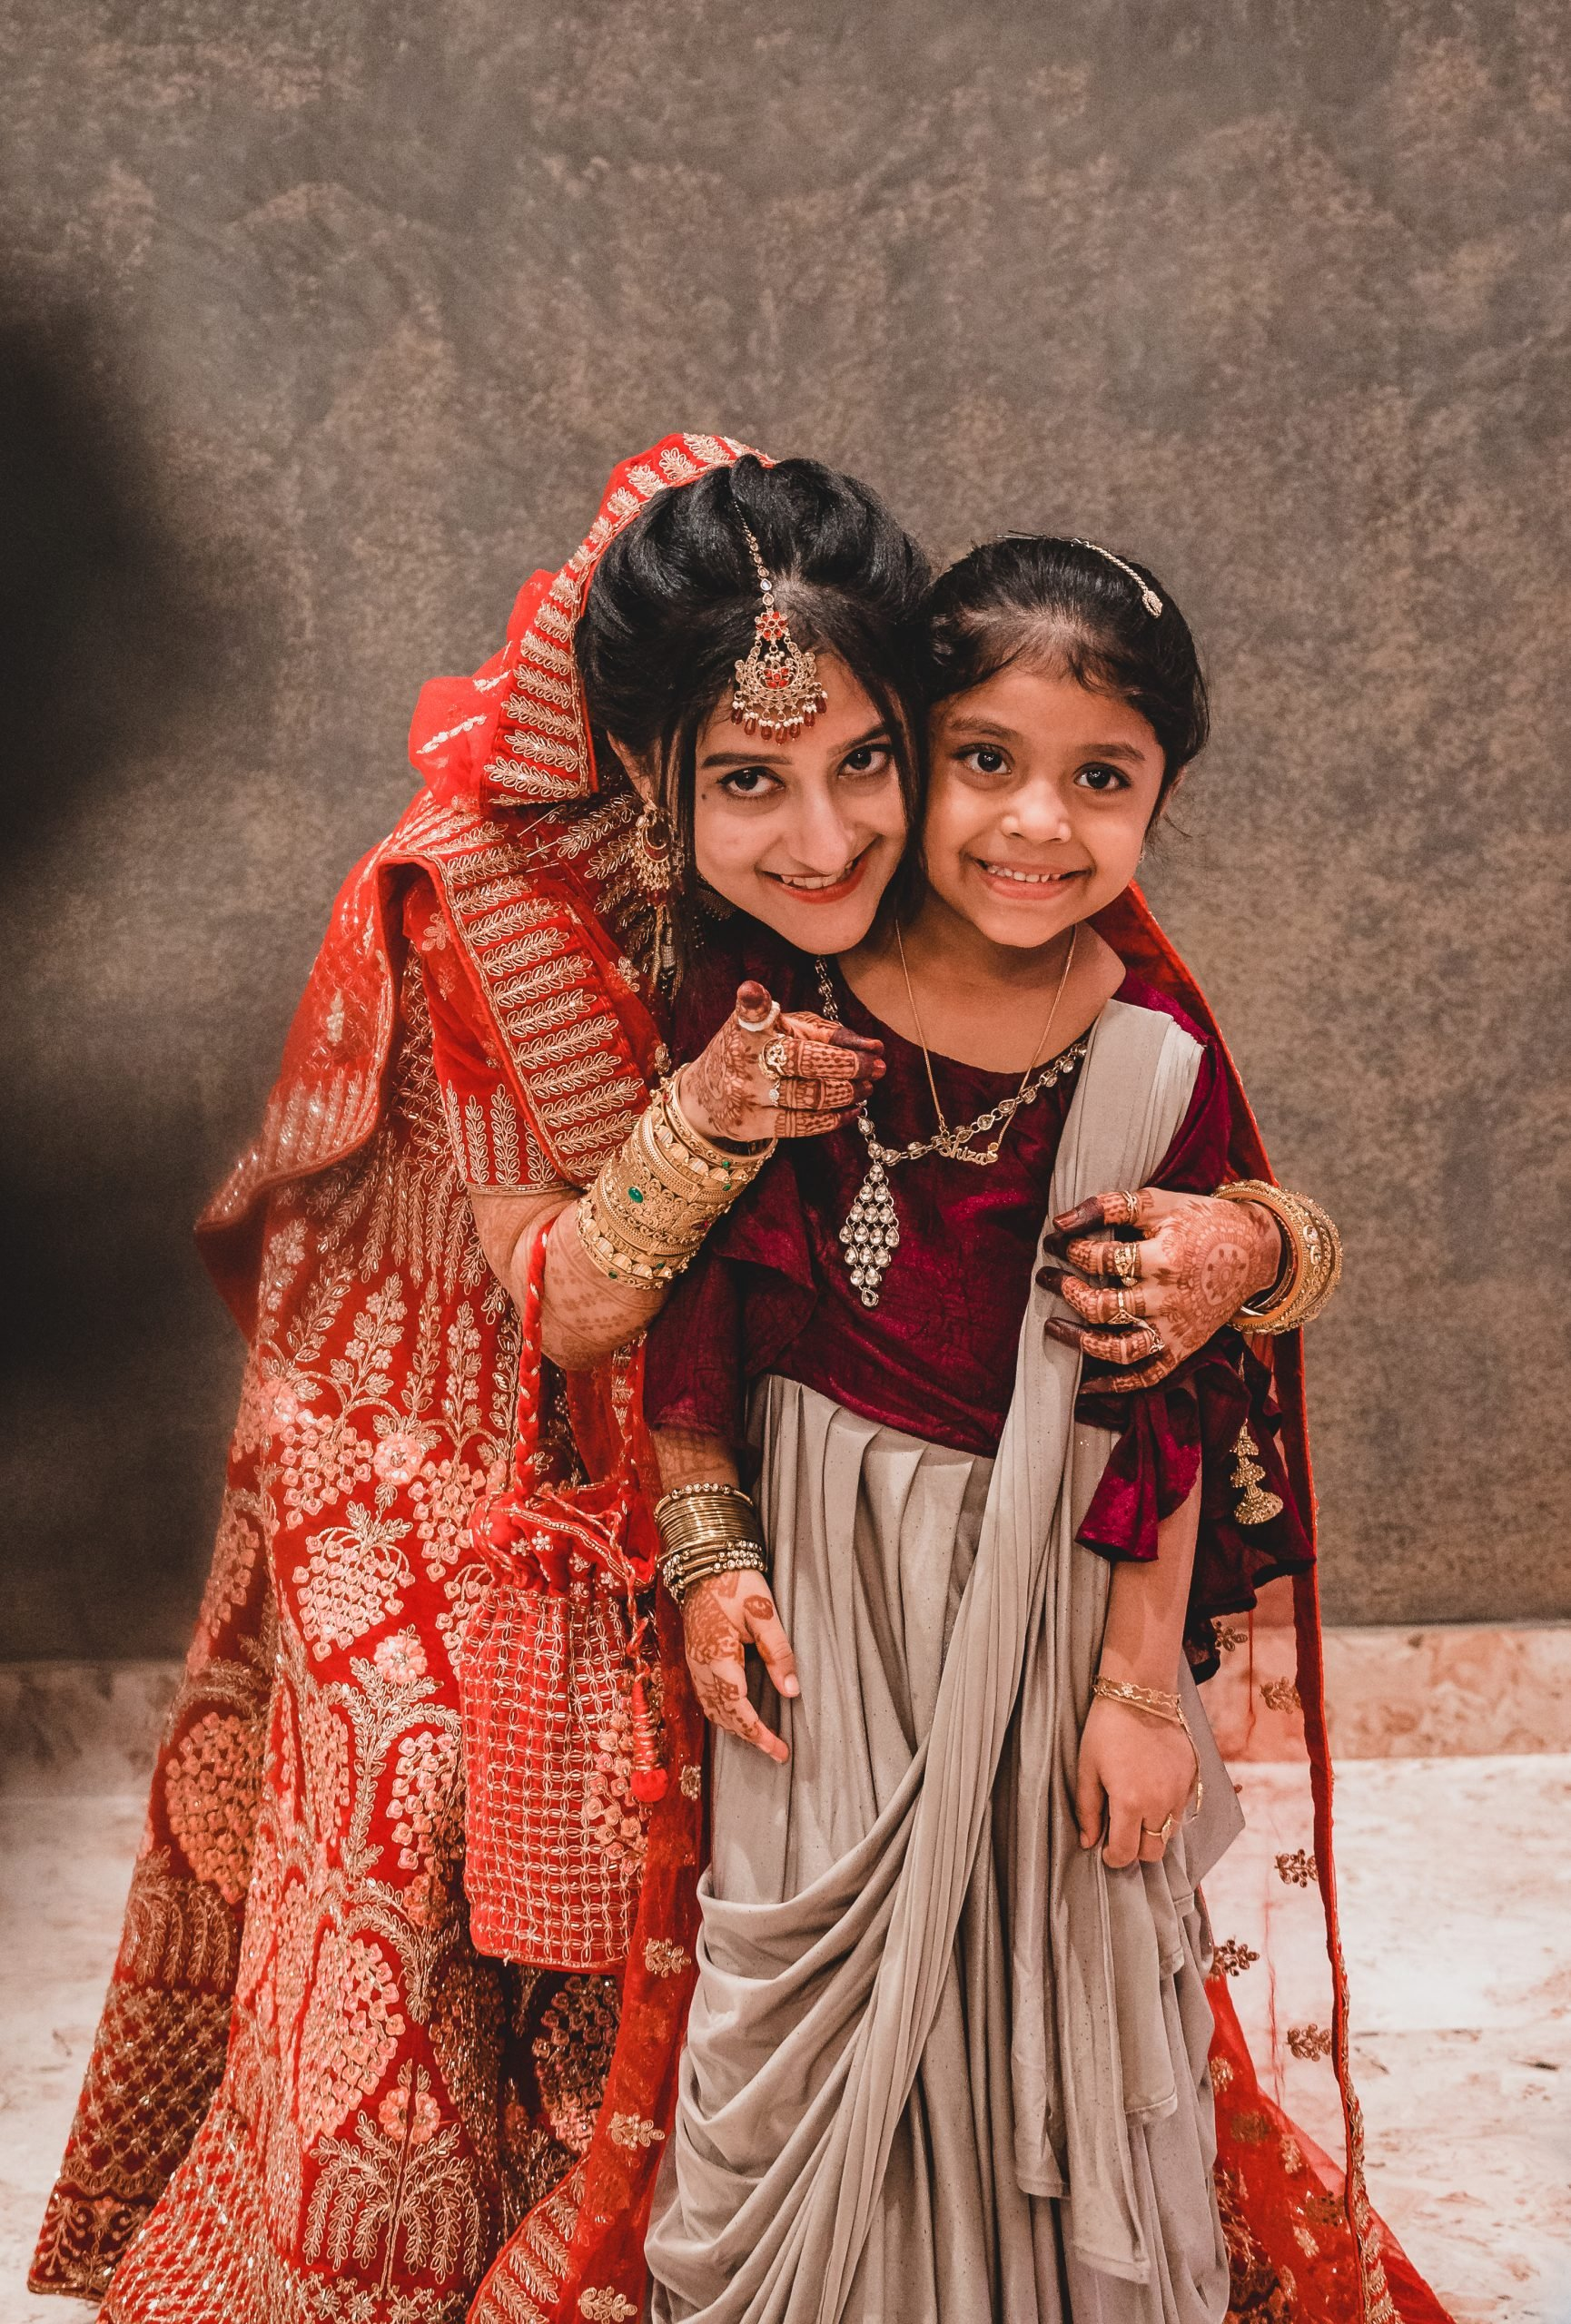 An Indian bride with a little girl